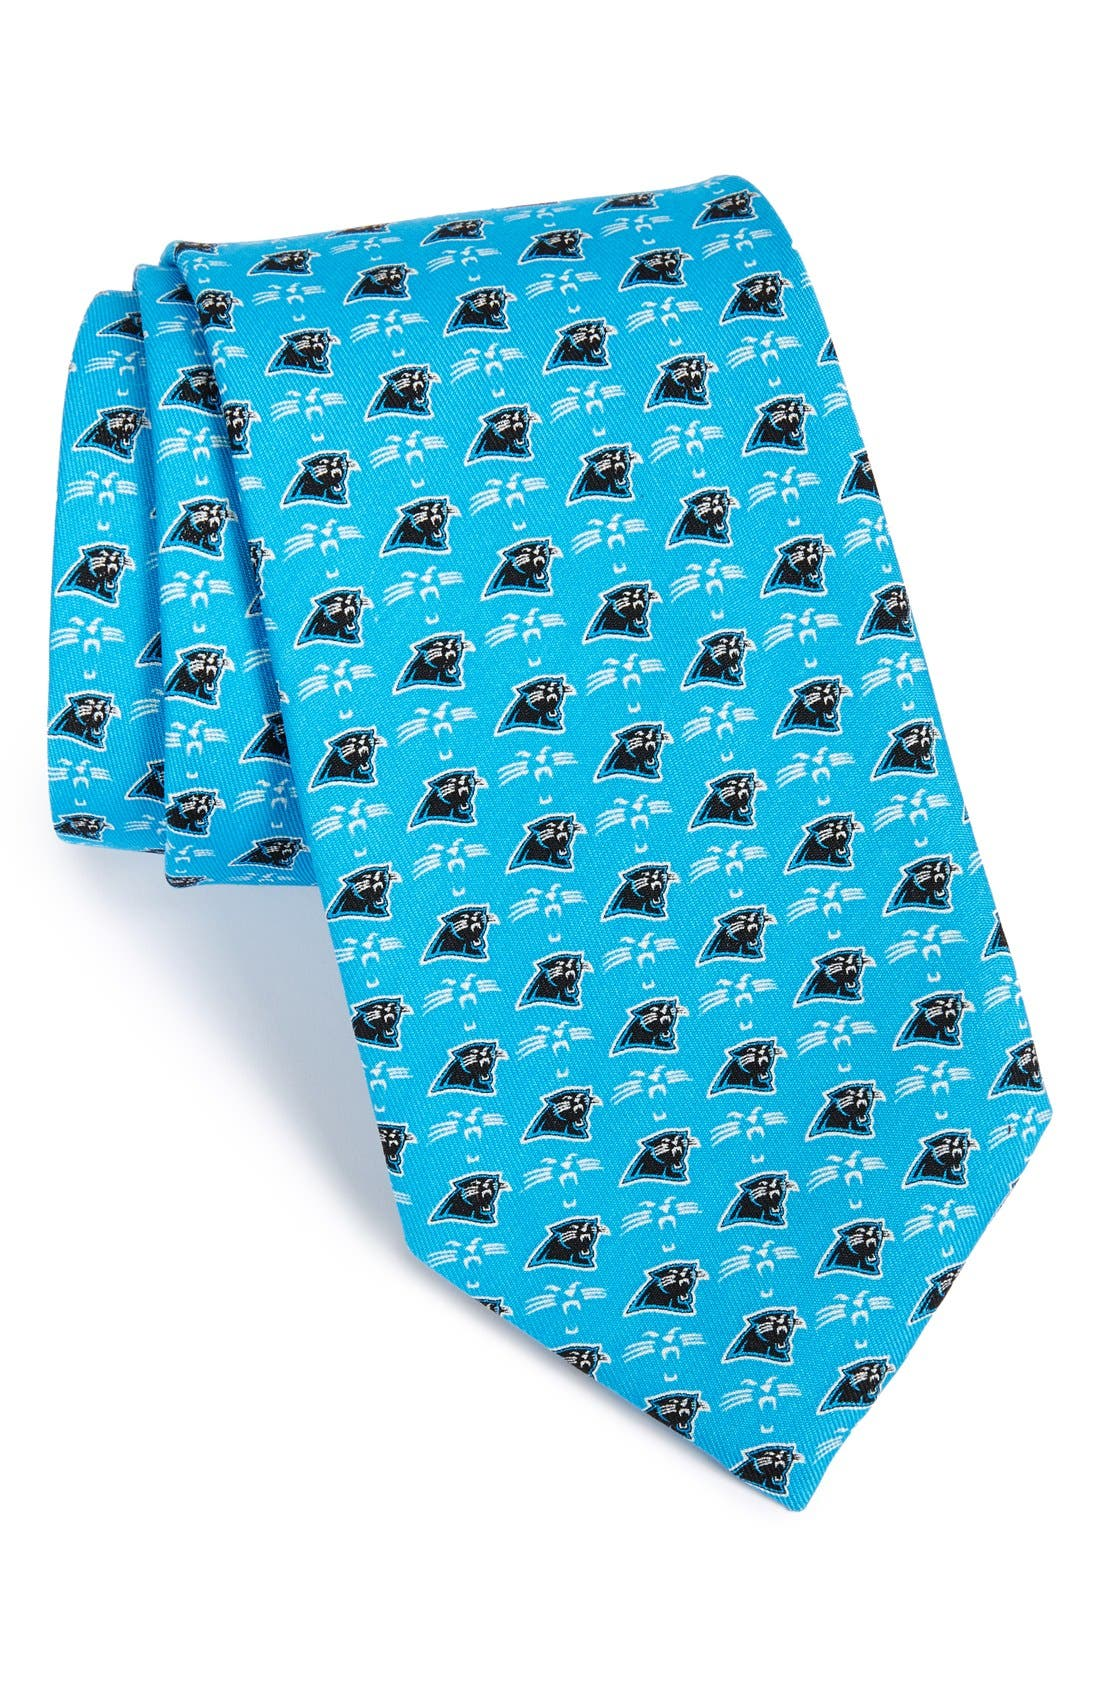 Carolina Panthers - NFL Woven Silk Tie,                             Main thumbnail 1, color,                             453